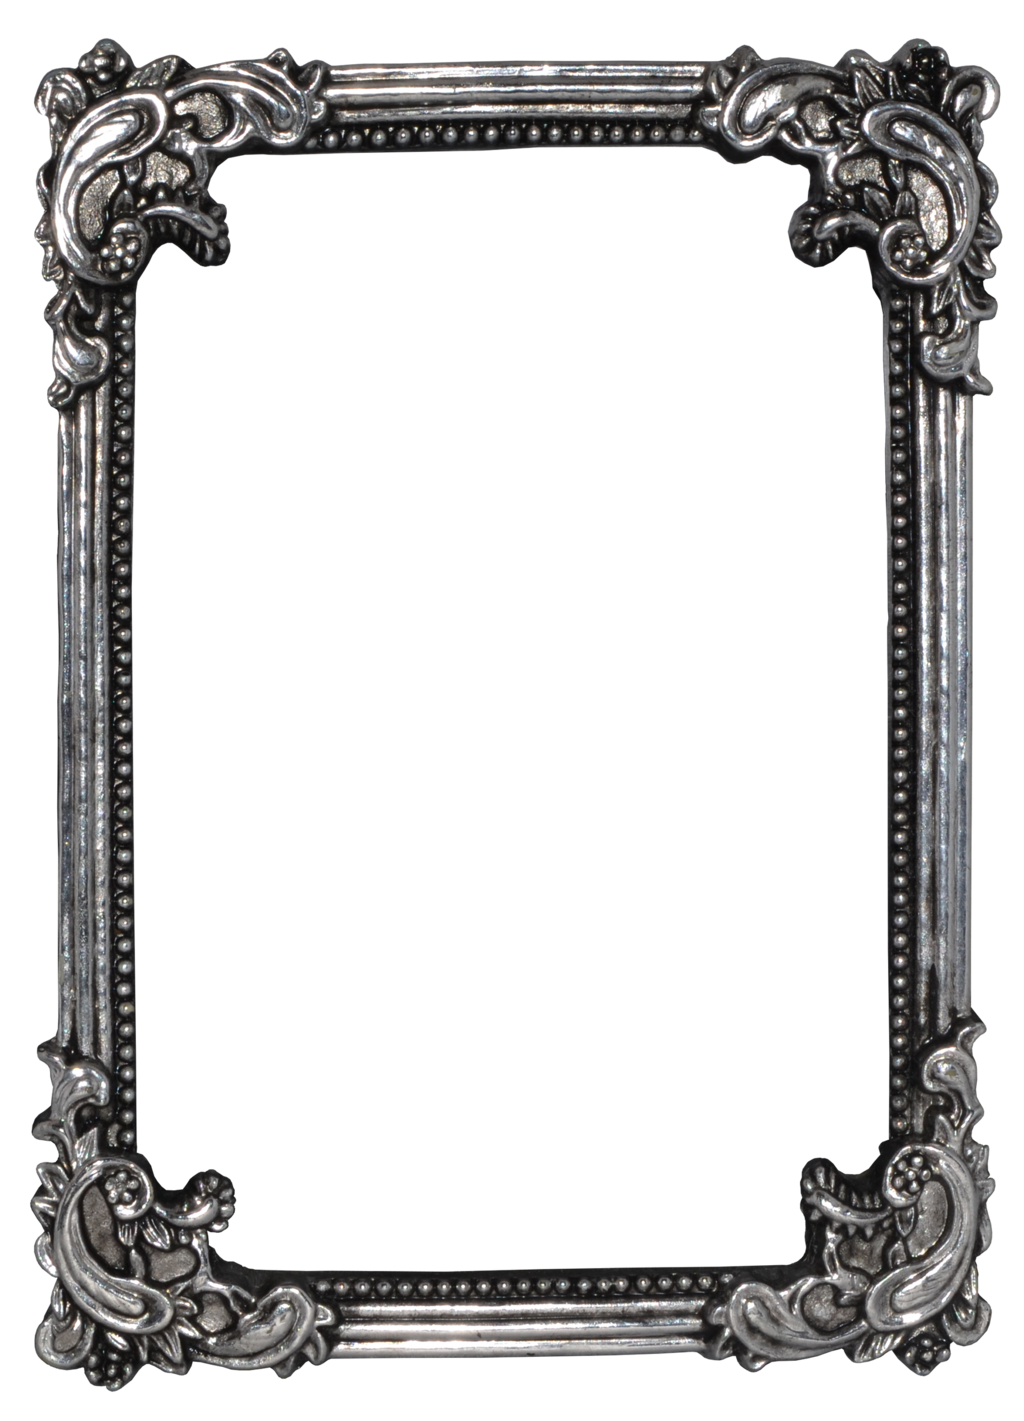 Free Download Photo Frame Png Images